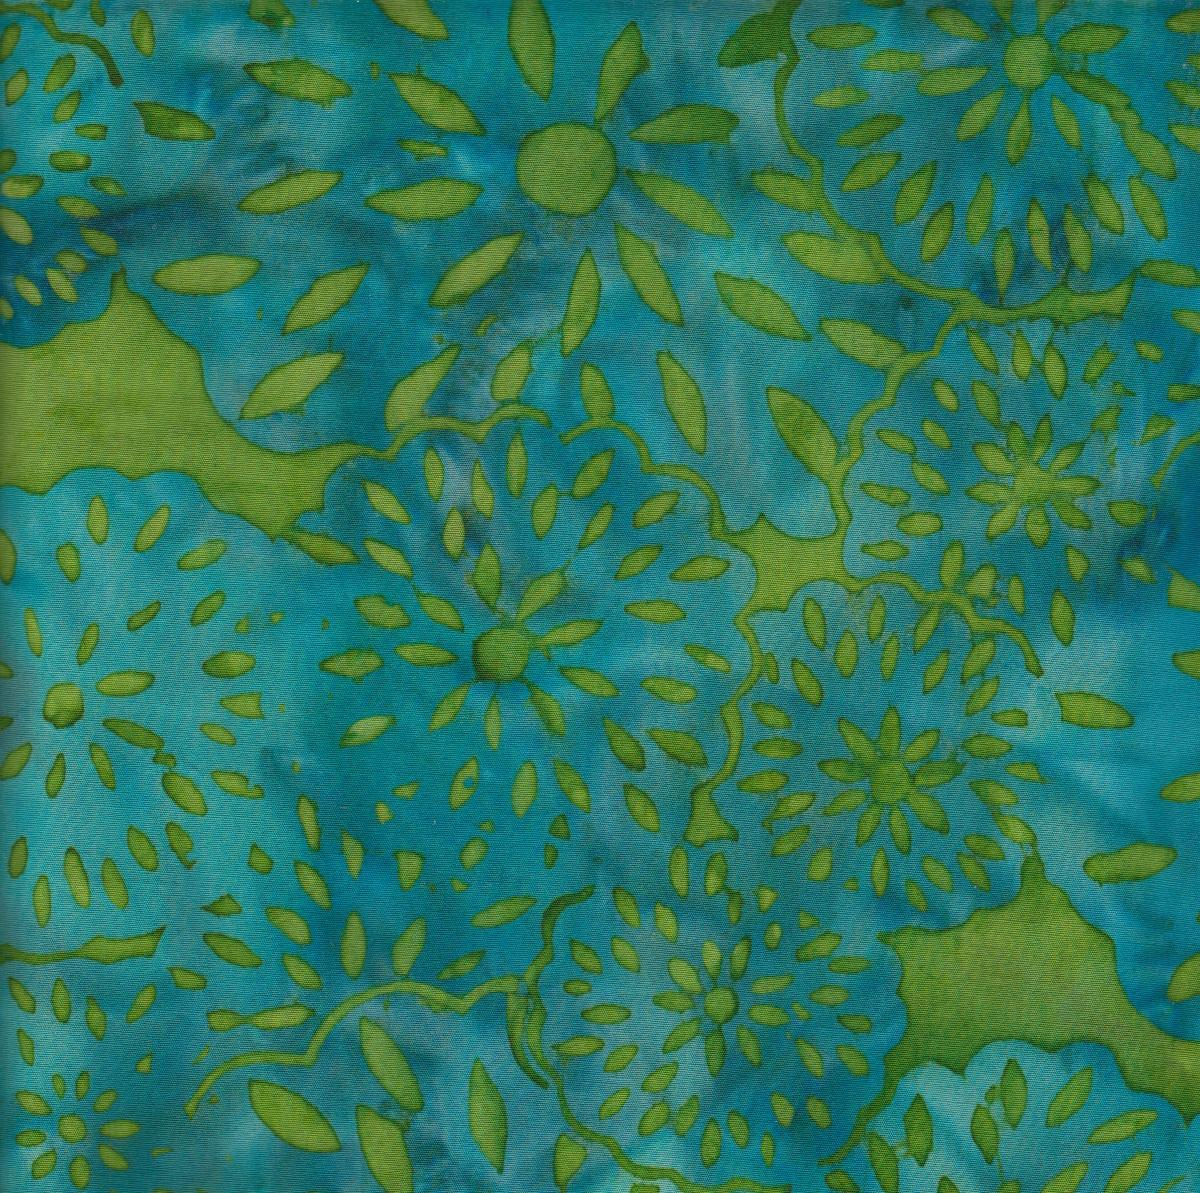 Island Batik - Turquoise and Lime Green